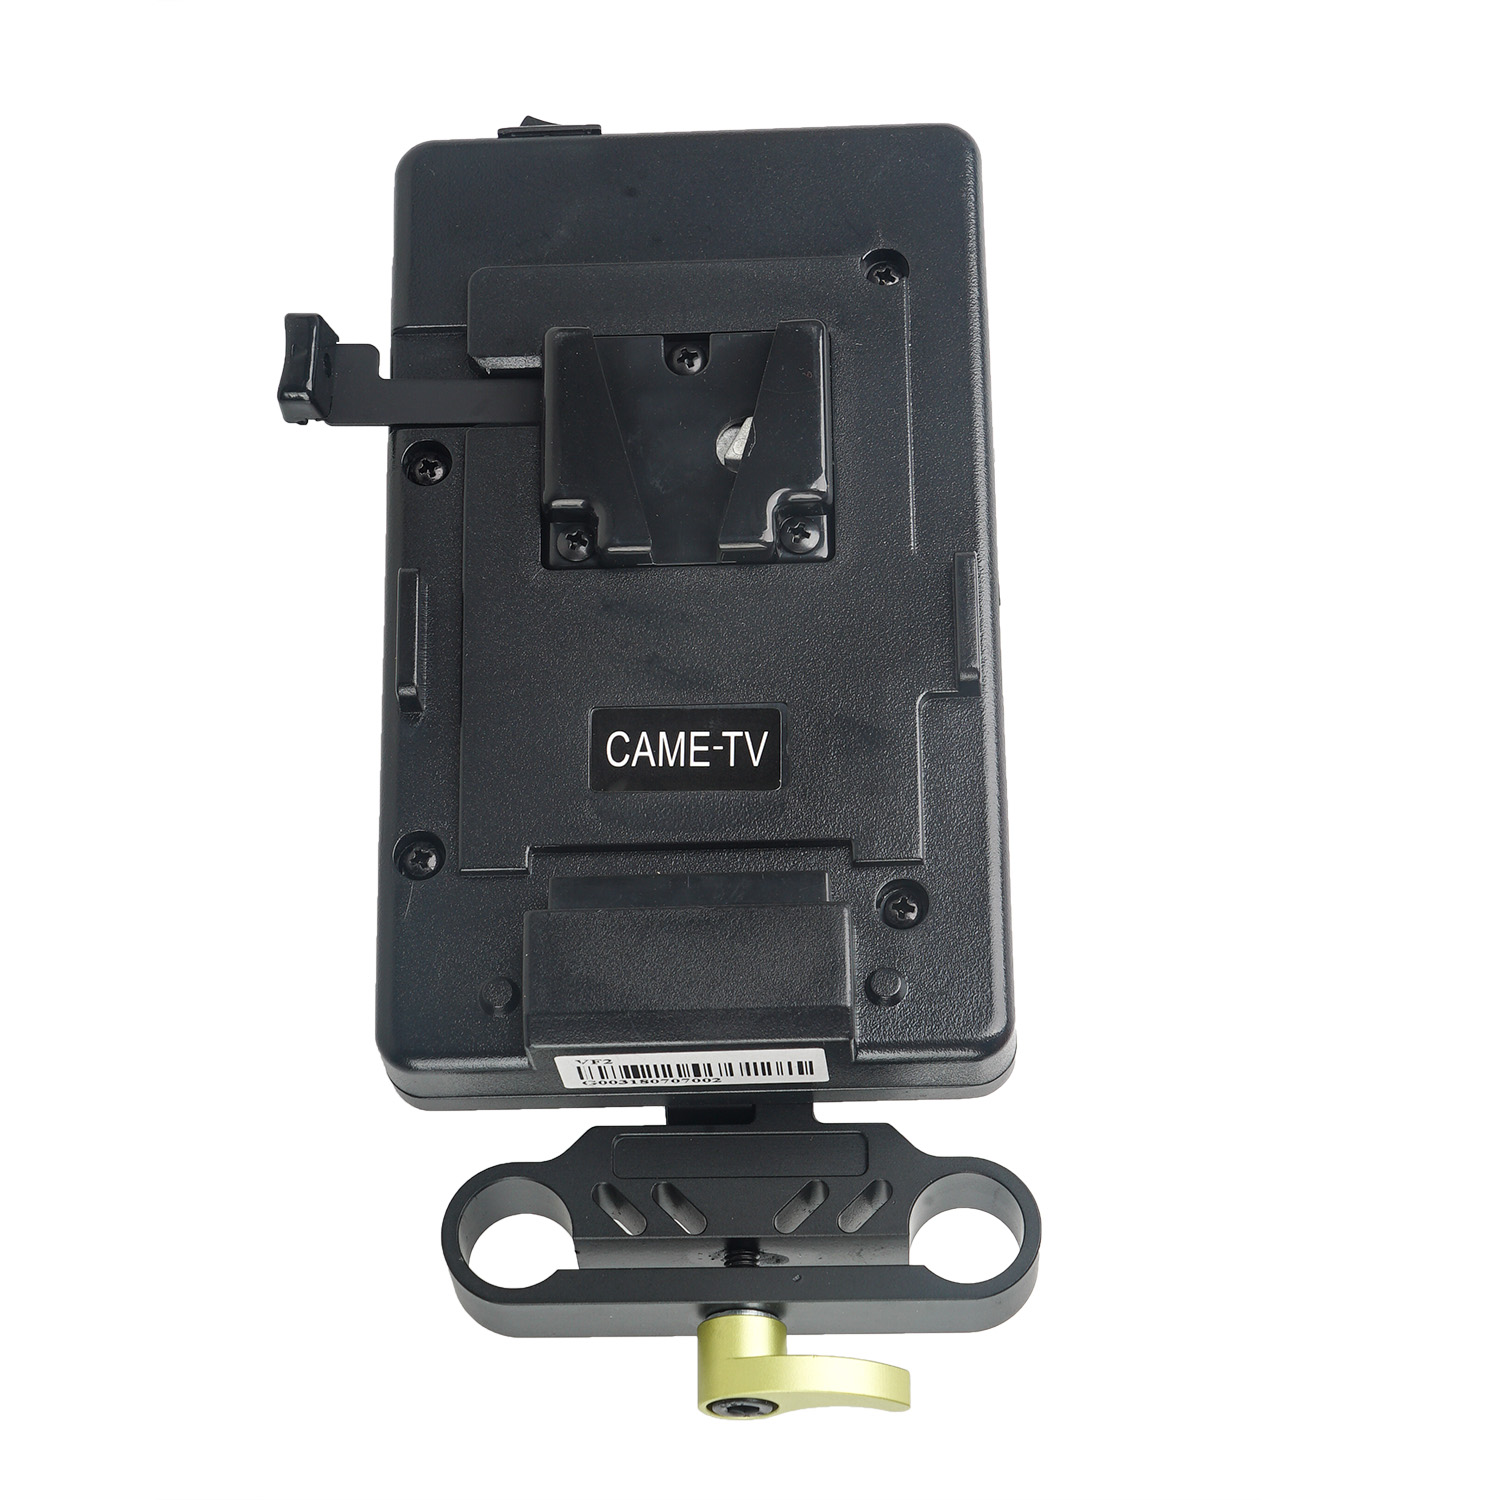 Image 5 - CAME TV V mount Battery Plate Include Connection Cable 5V 7.2V 12V-in Photo Studio Accessories from Consumer Electronics